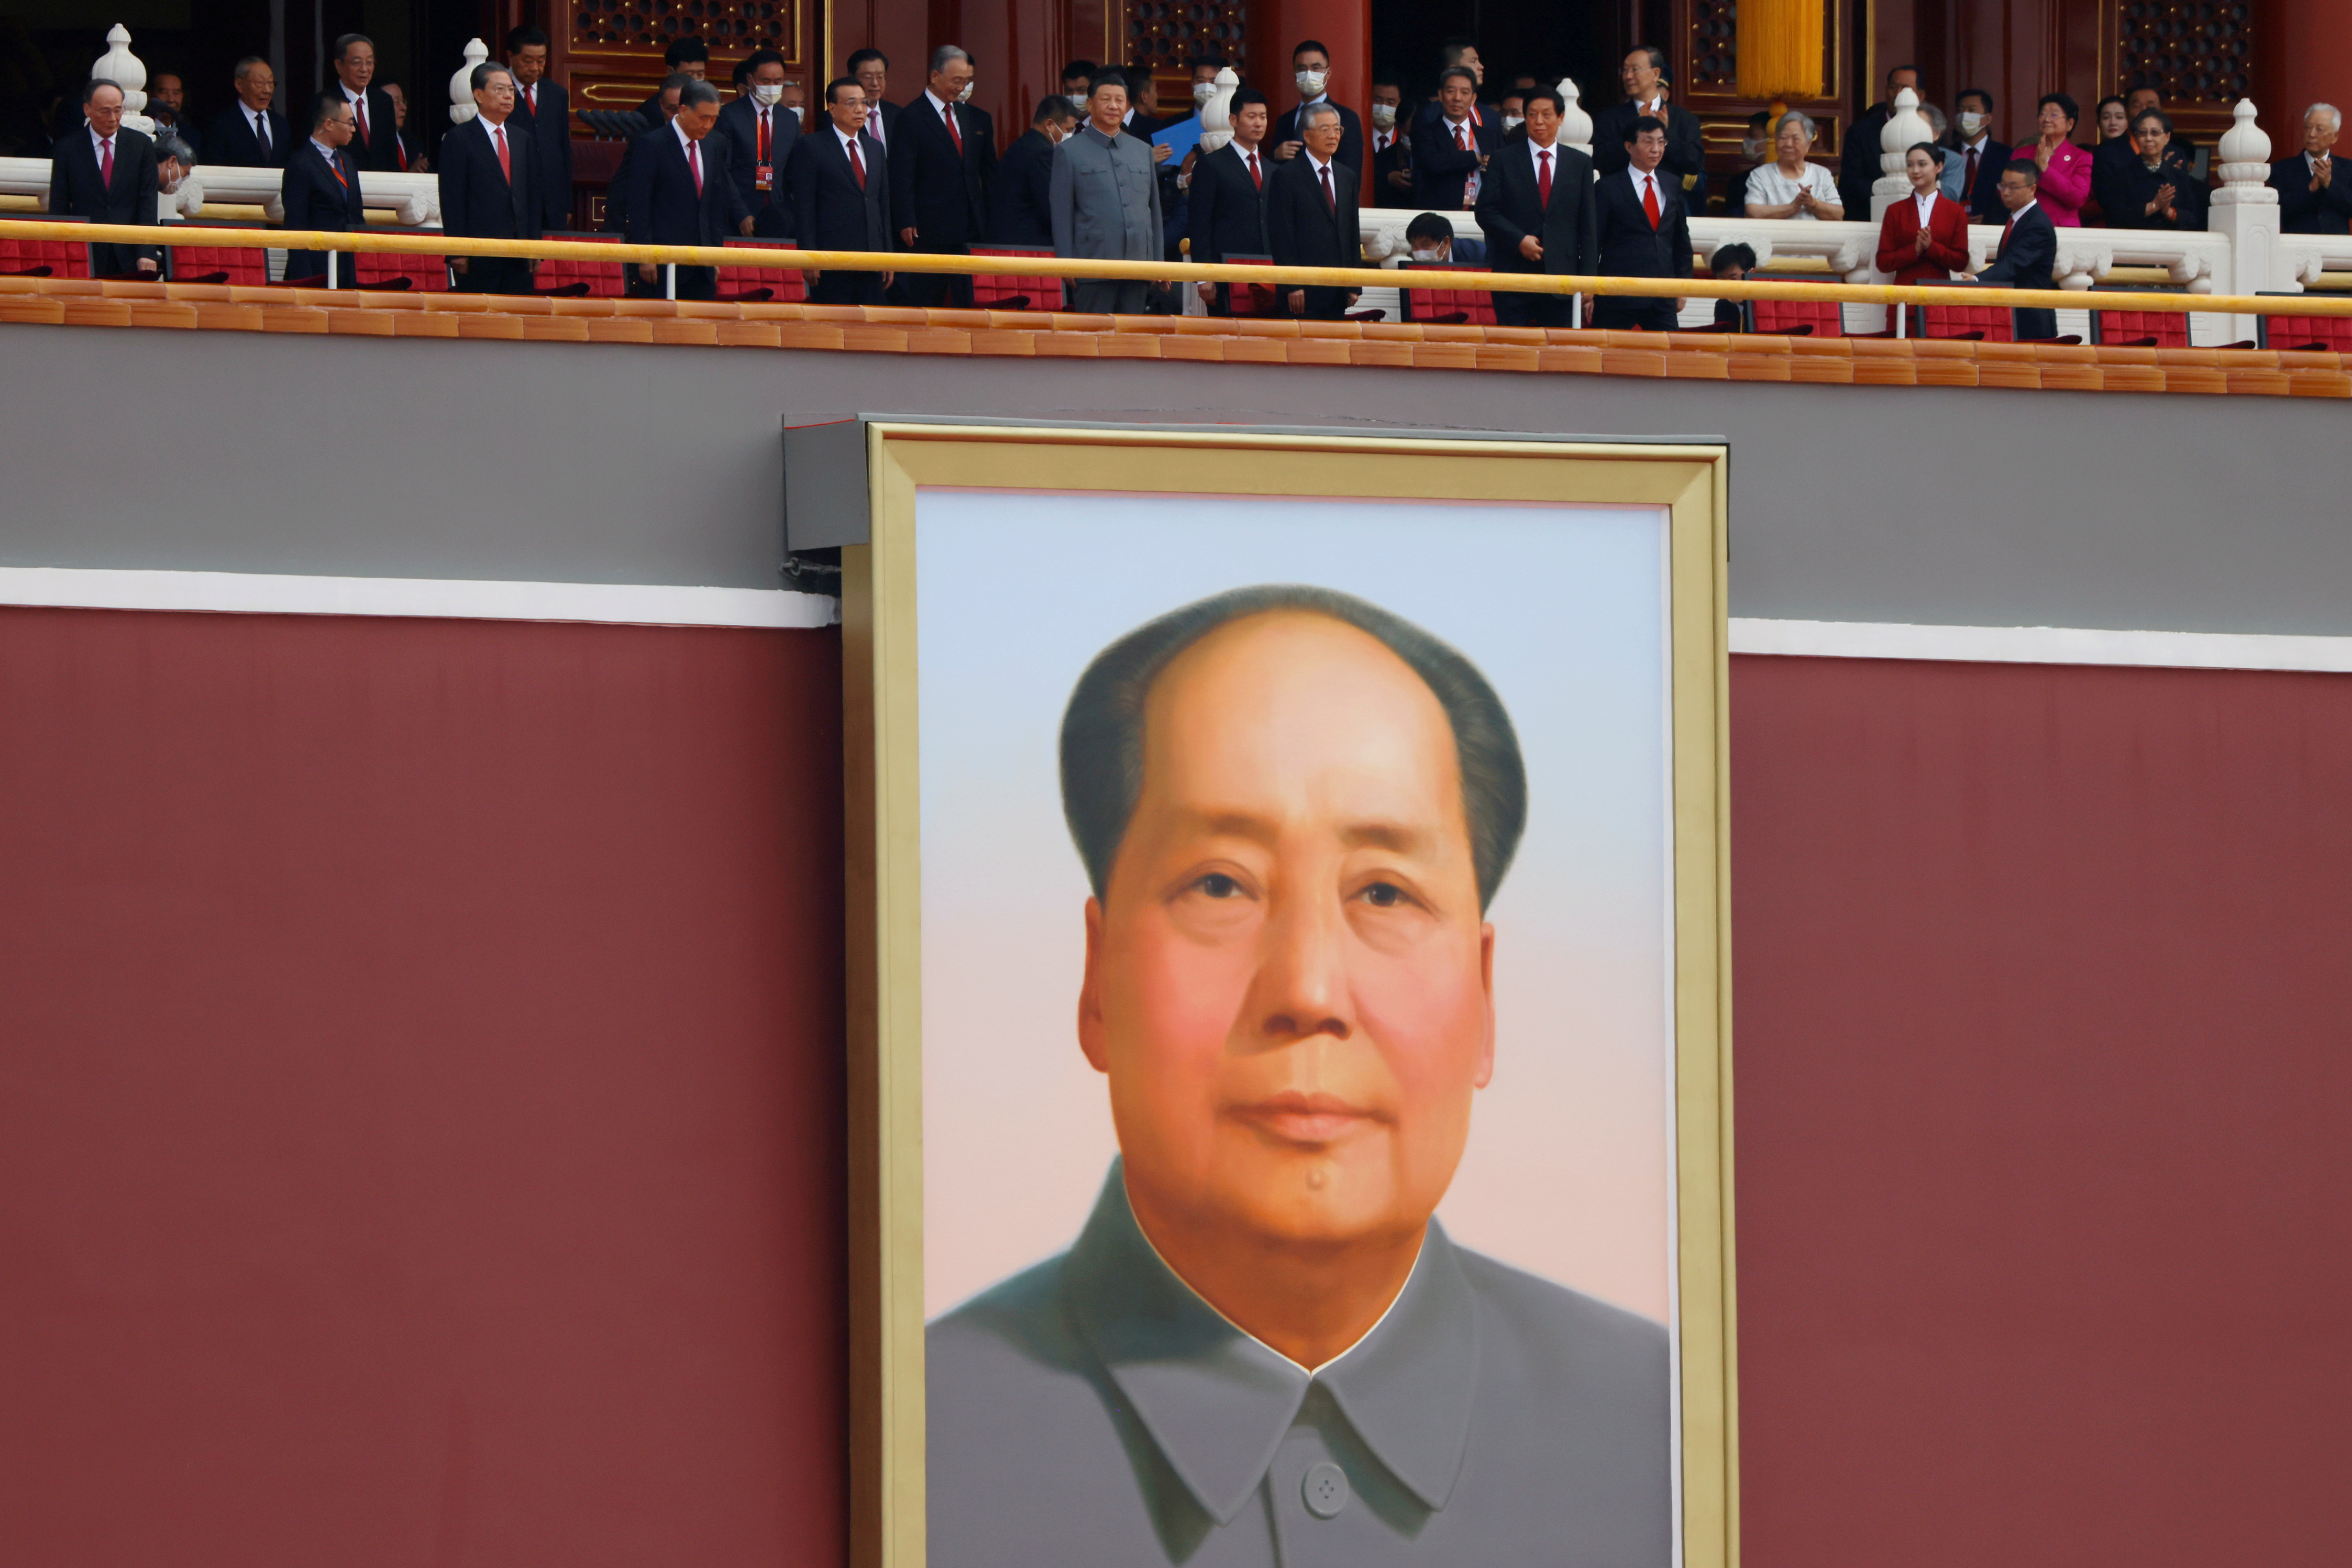 Chinese President Xi Jinping and other leaders stand above a giant portrait of late Chinese chairman Mao Zedong as they arrive for the event marking the 100th founding anniversary of the Communist Party of China, on Tiananmen Square in Beijing, China July 1, 2021. REUTERS/Carlos Garcia Rawlins